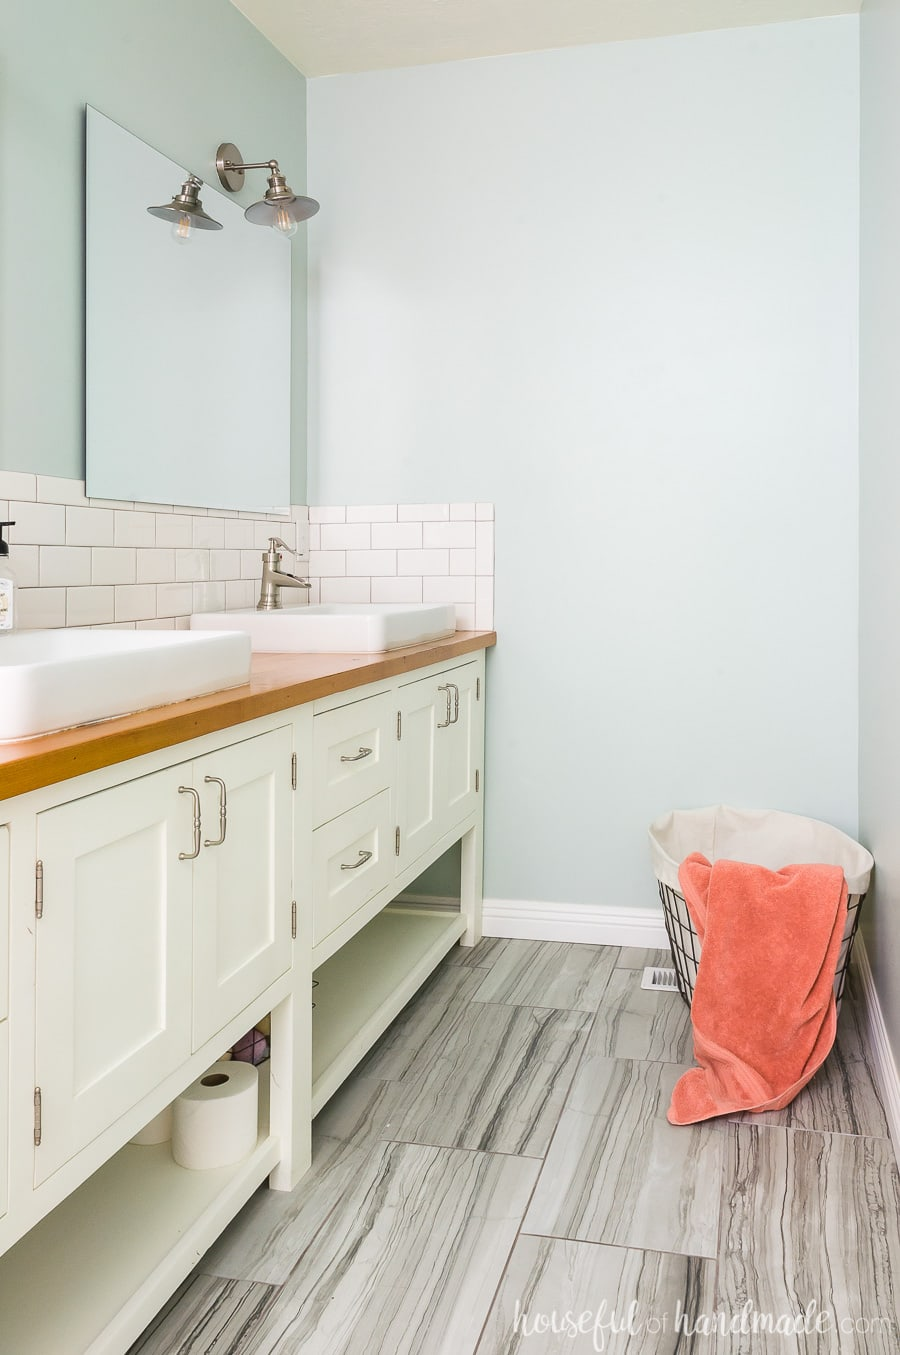 Create a beautiful master bathroom retreat with soft green walls, white vanity, real wood vanity top, and vessel sinks.